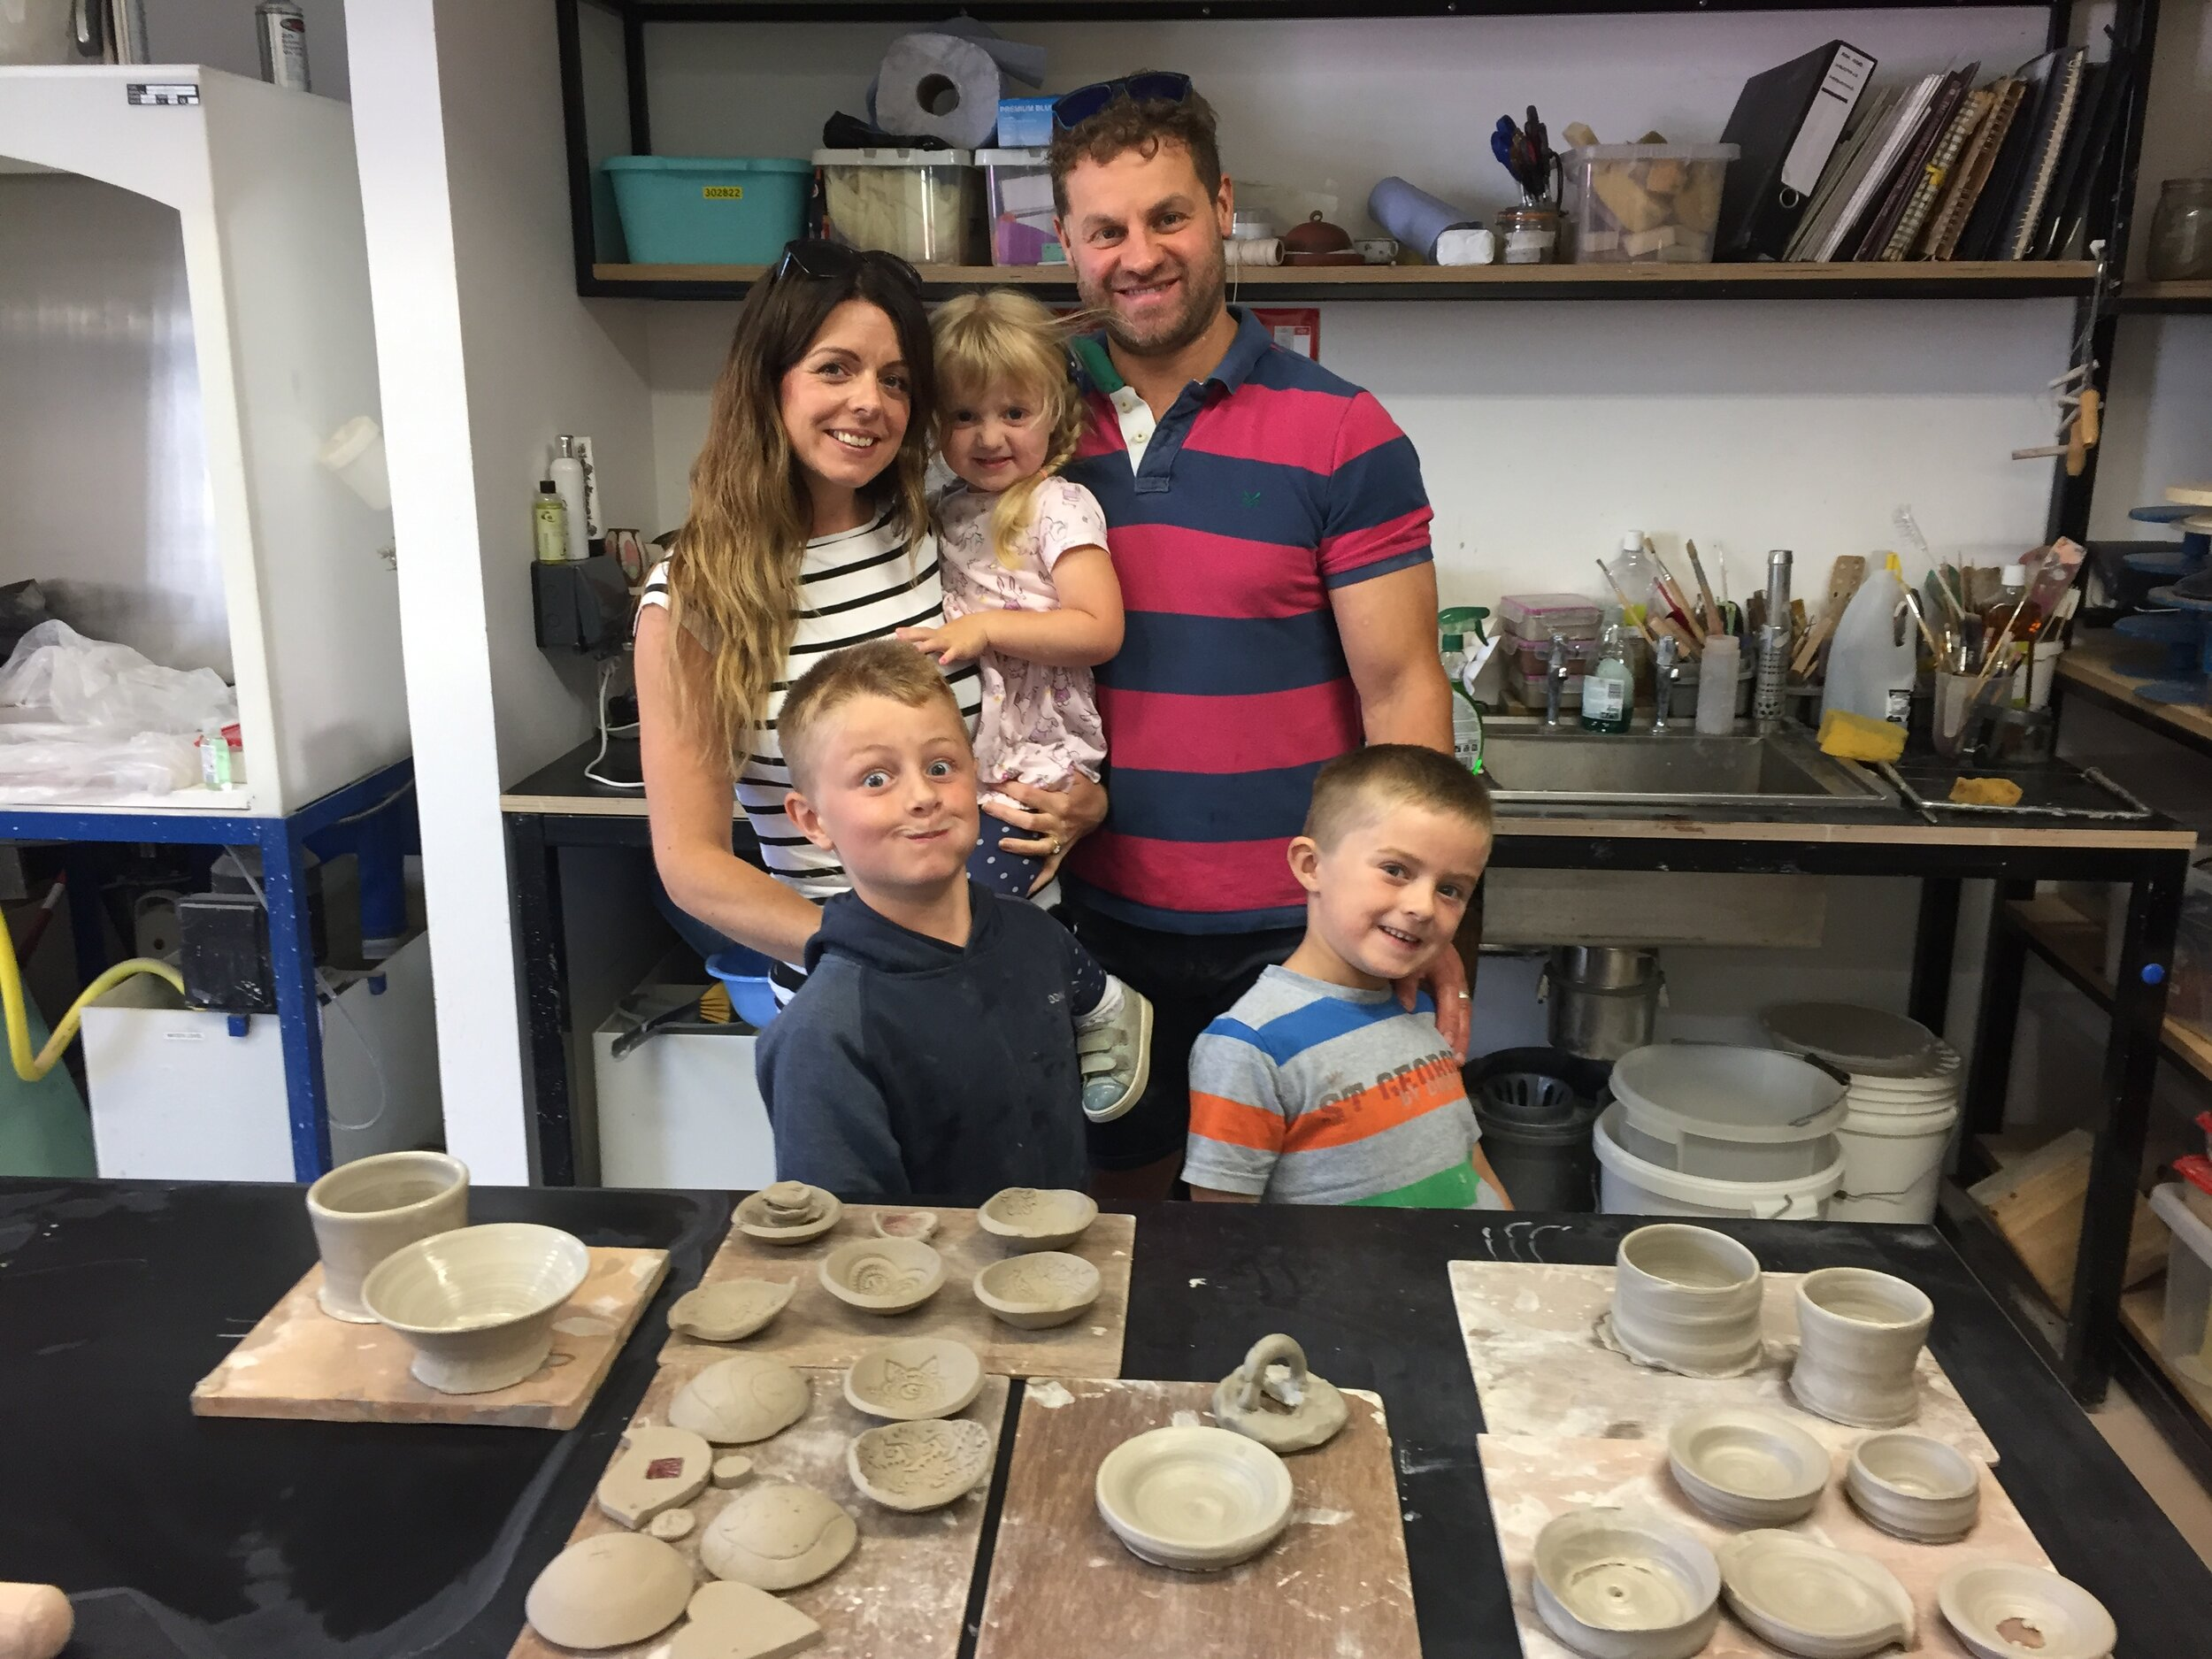 Family workshops - Create beautiful memories through a team project. This bespoke 2 hour workshop will give each family member an opportunity to explore the wheel as well as making hand formed items.No previous experience needed. All work will be fired and glazed. Cost of workshop £50